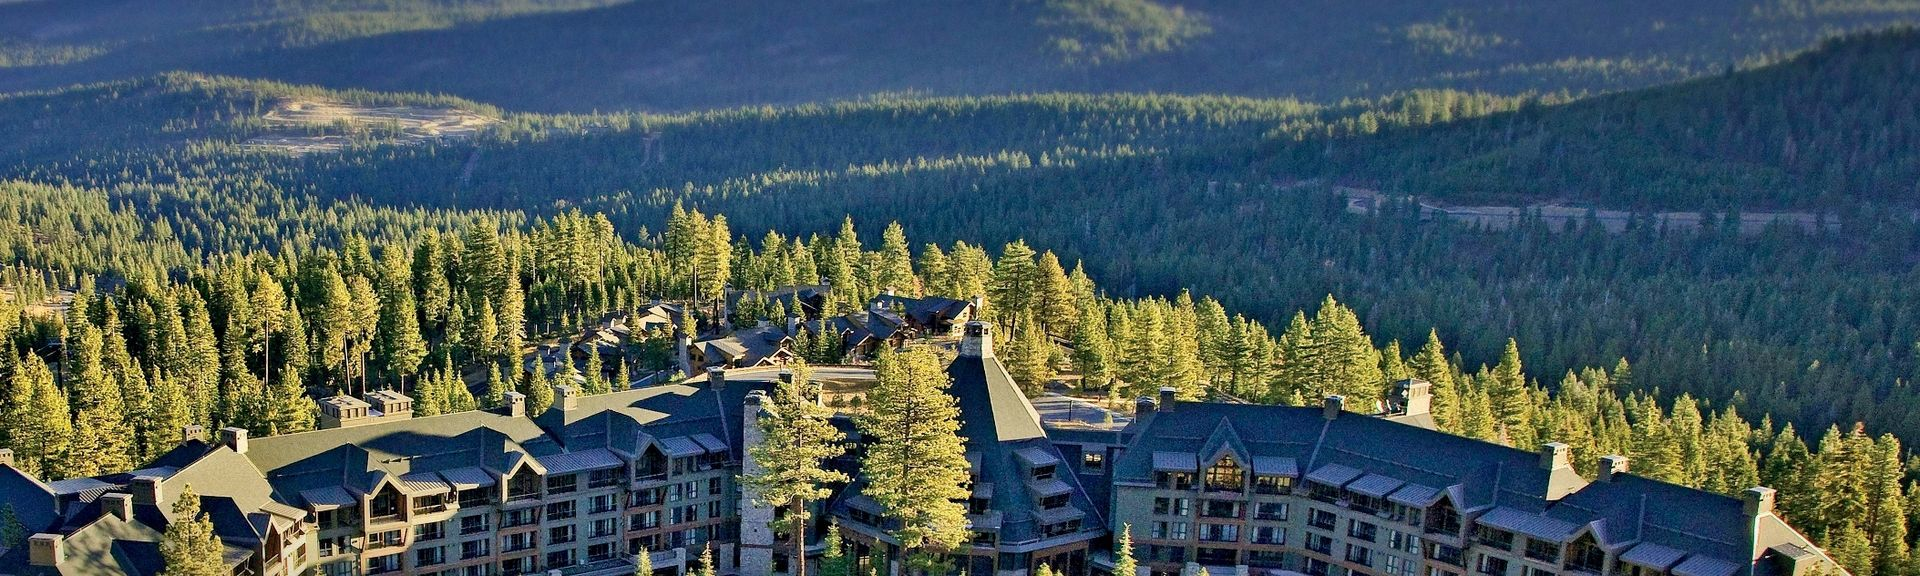 The Ritz-Carlton (Truckee, California, United States)